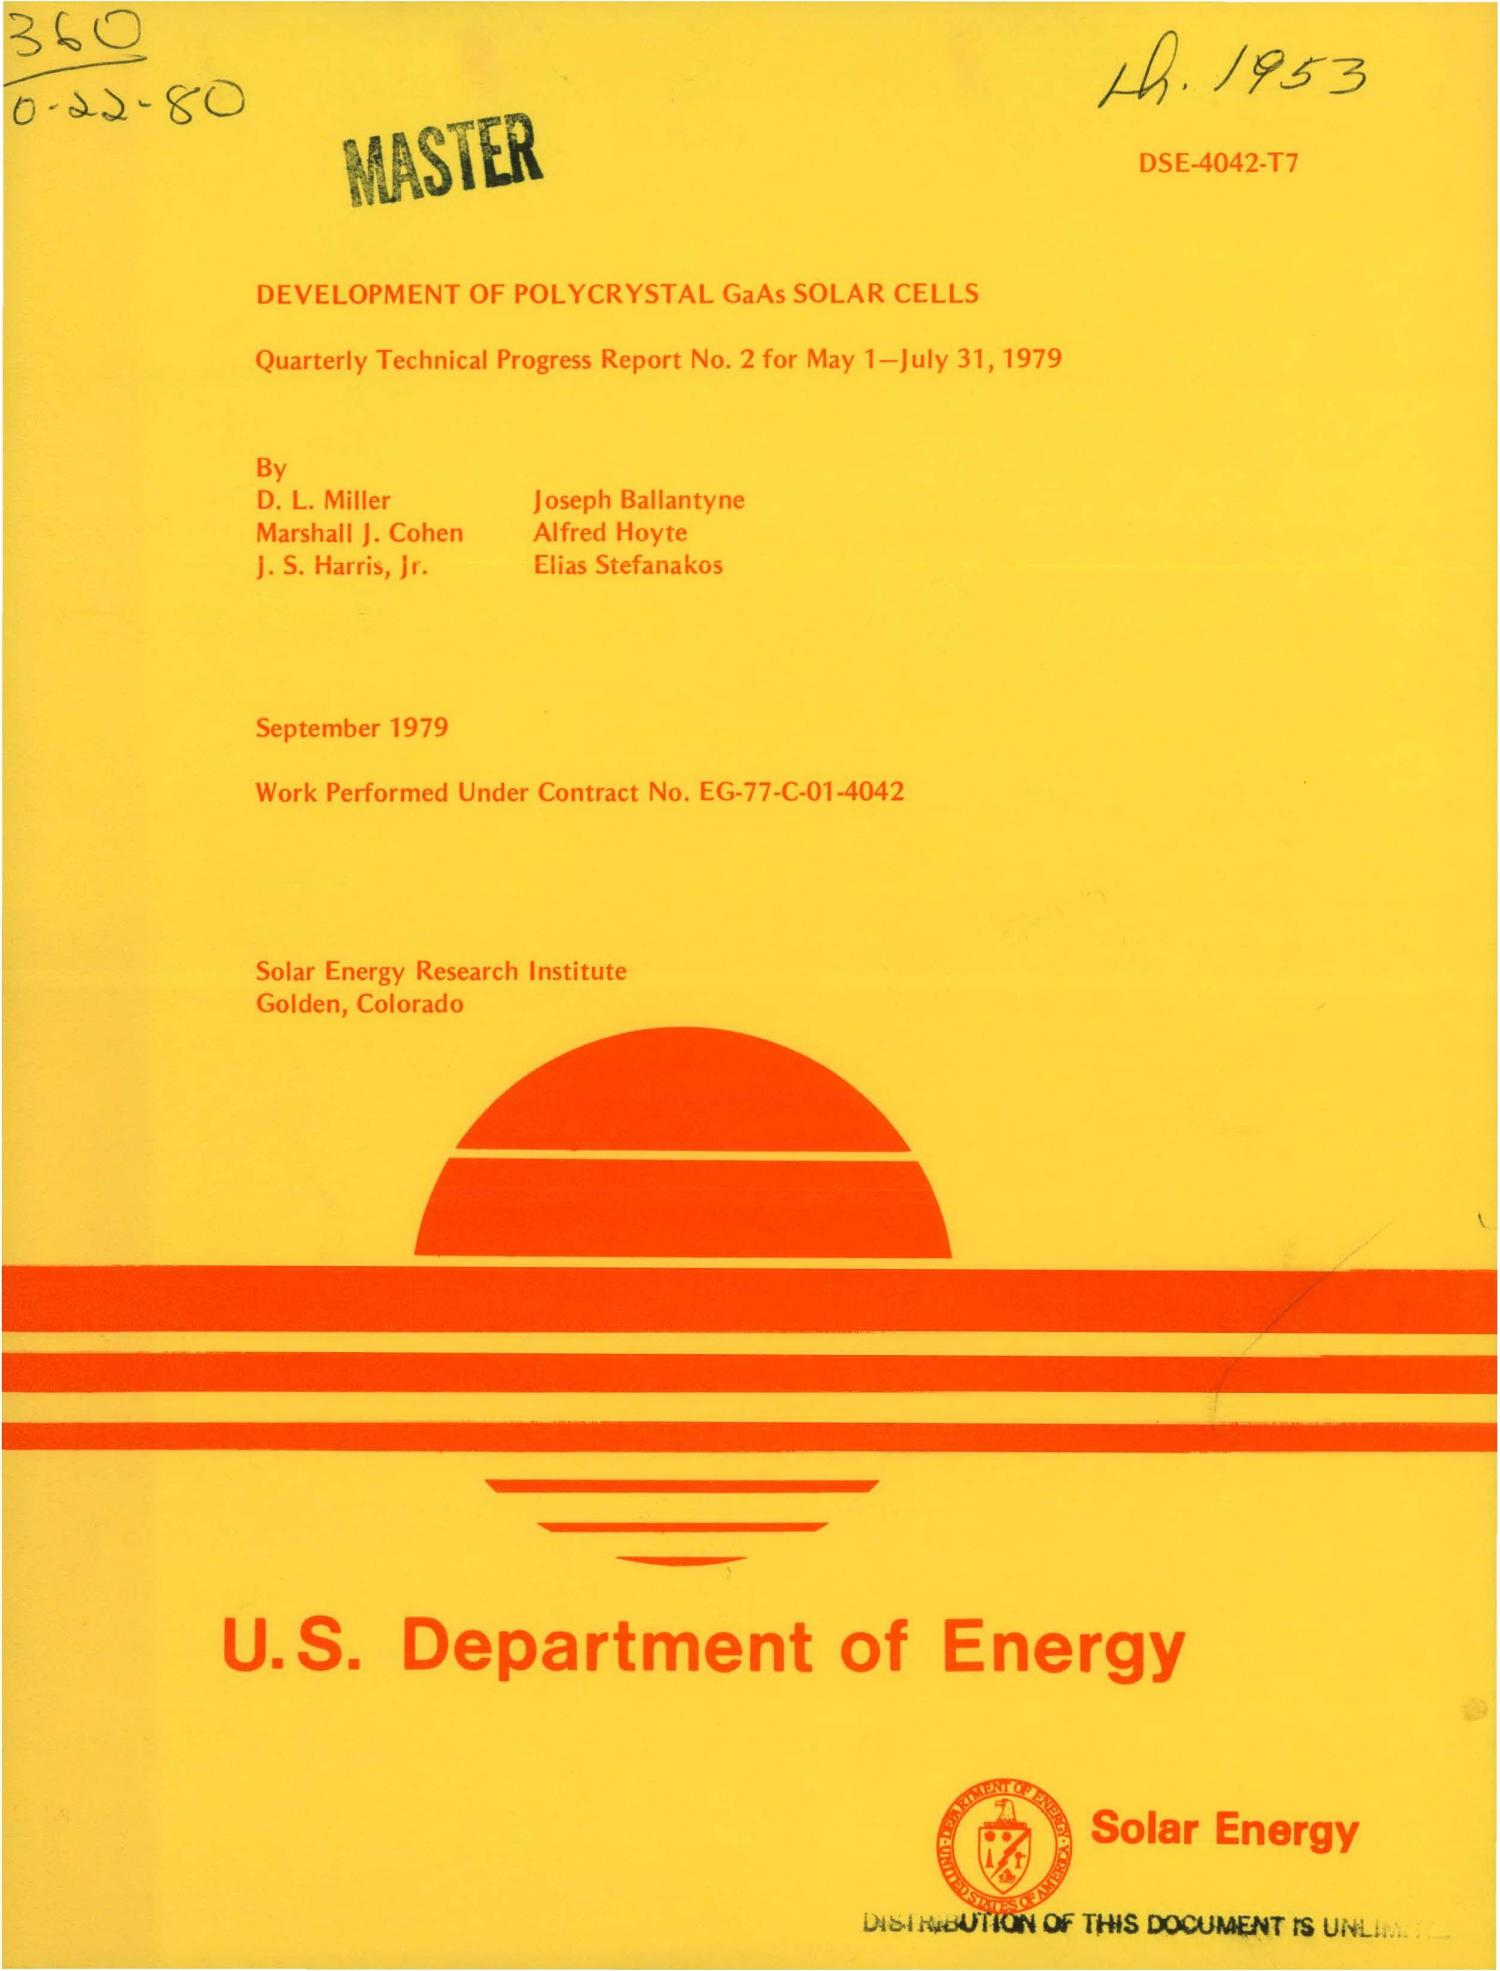 Development of polycrystal GaAs solar cells. Quarterly technical progress report No. 2 for May 1-July 31, 1979                                                                                                      [Sequence #]: 1 of 77